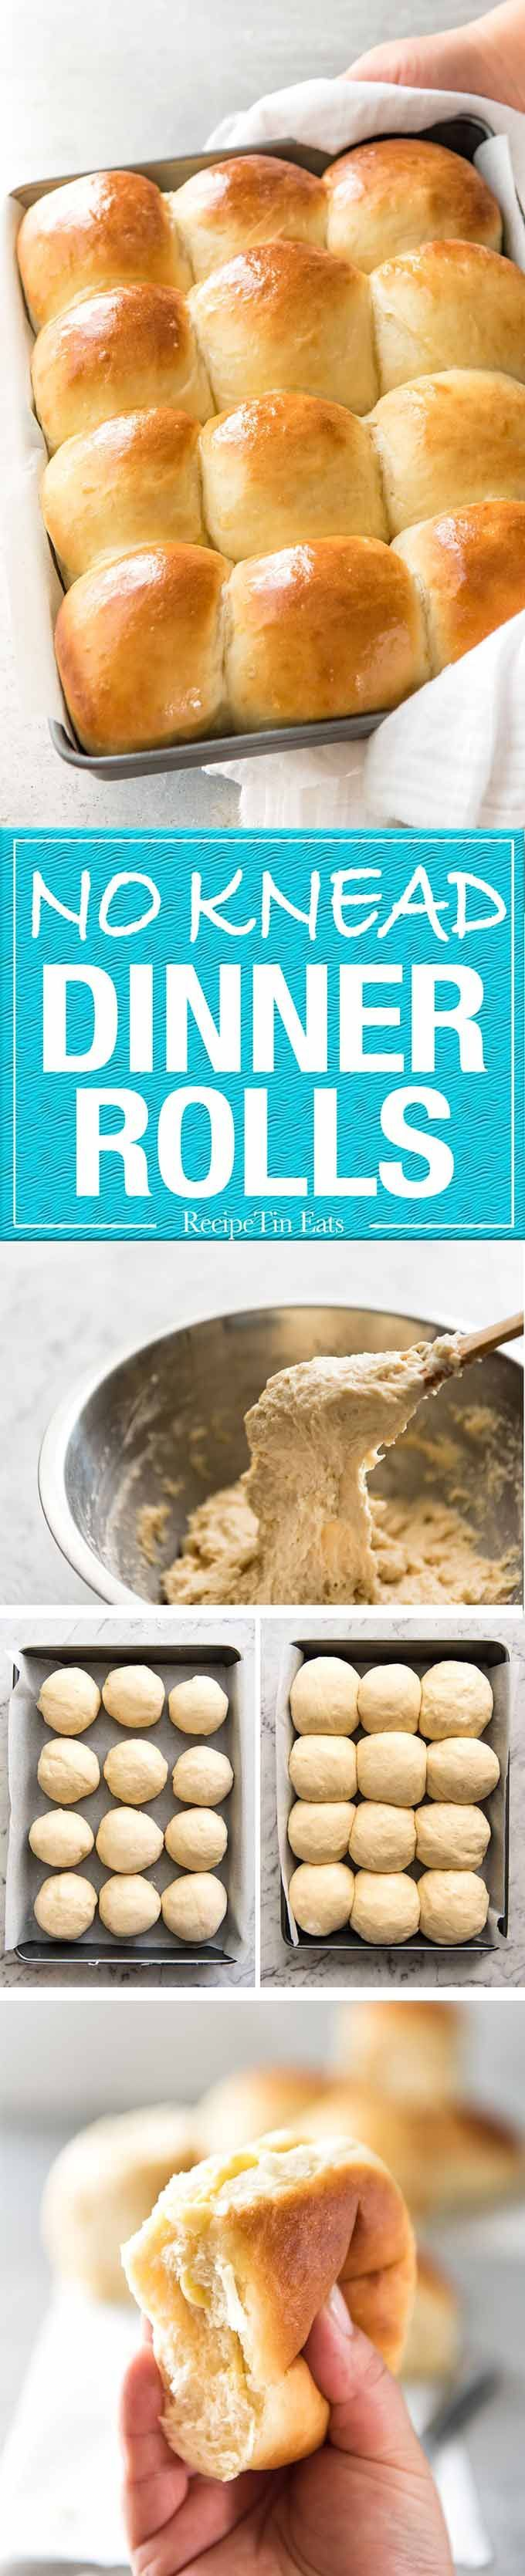 26818 best Food images on Pinterest | Cooking food, Drink and Recipes